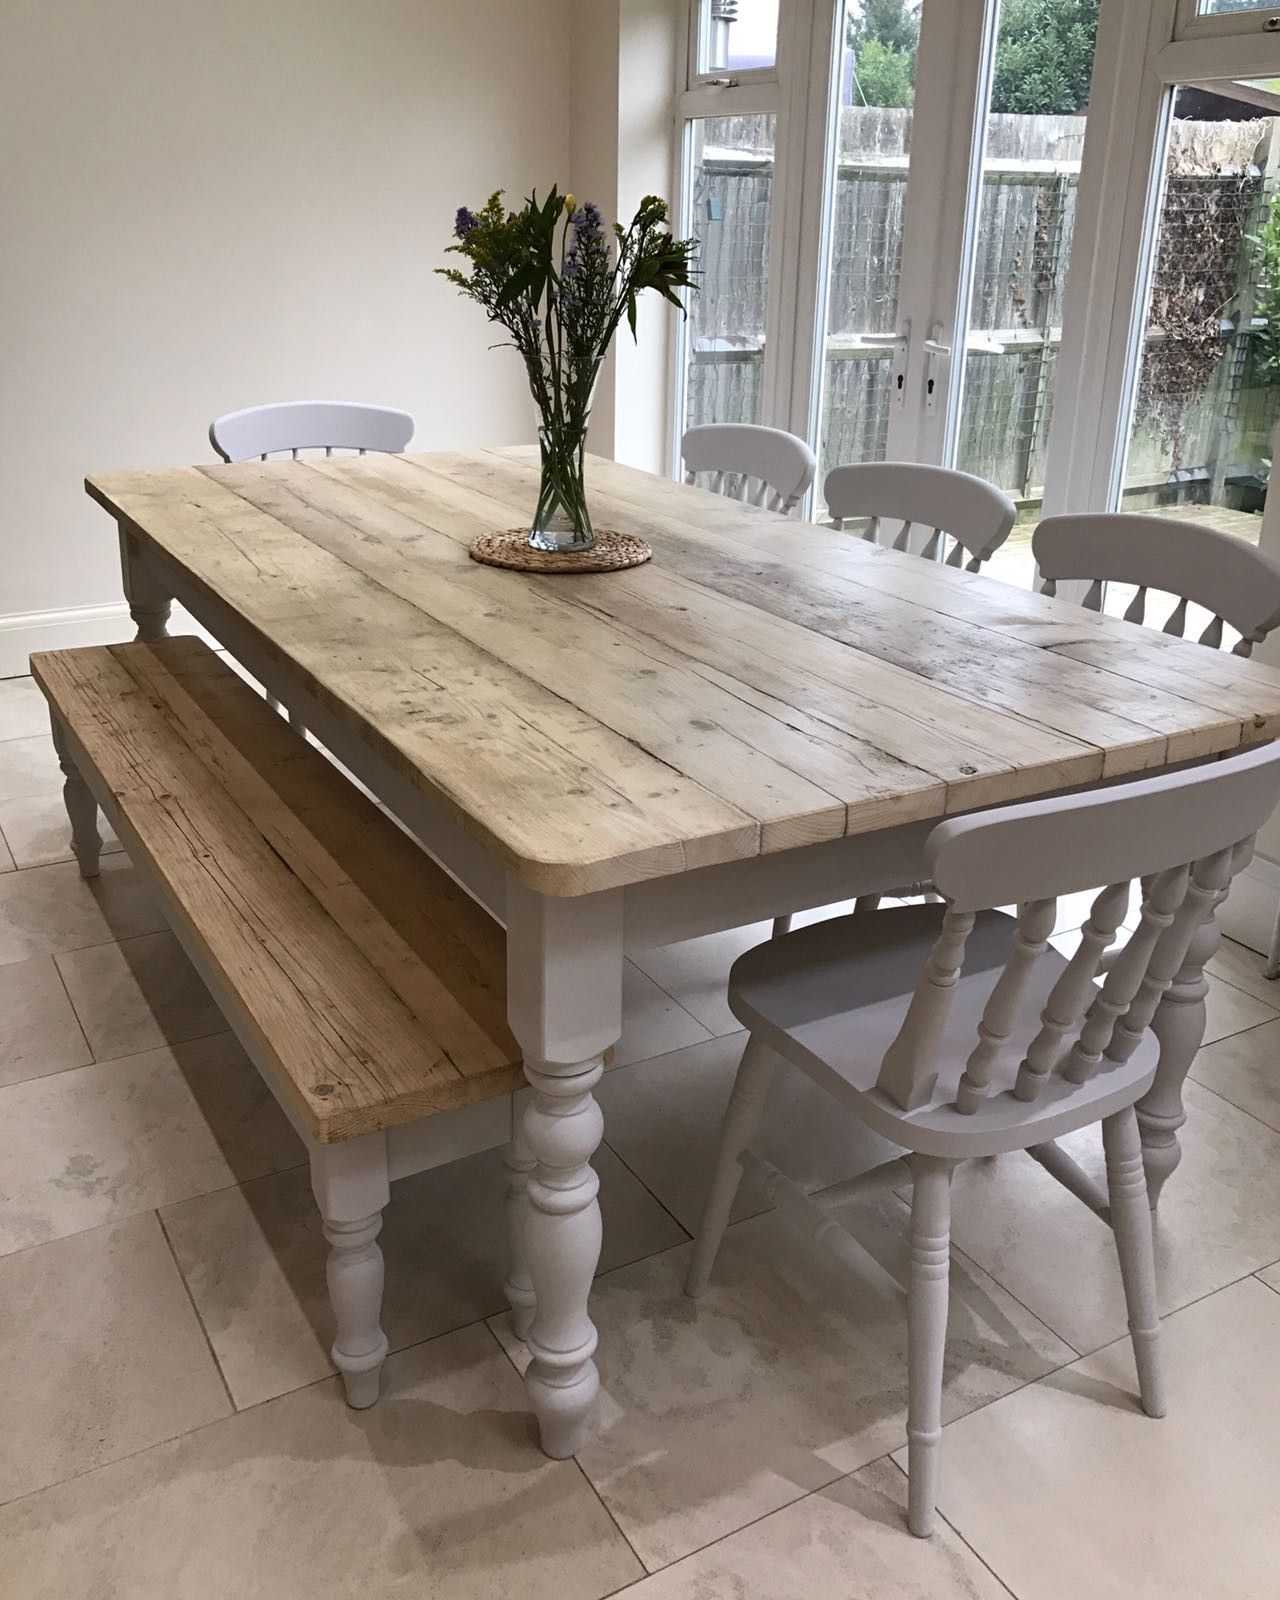 Farmhouse Dining Table And Chairs The Florence Clear 39 Table Made From Reclaimed Wood